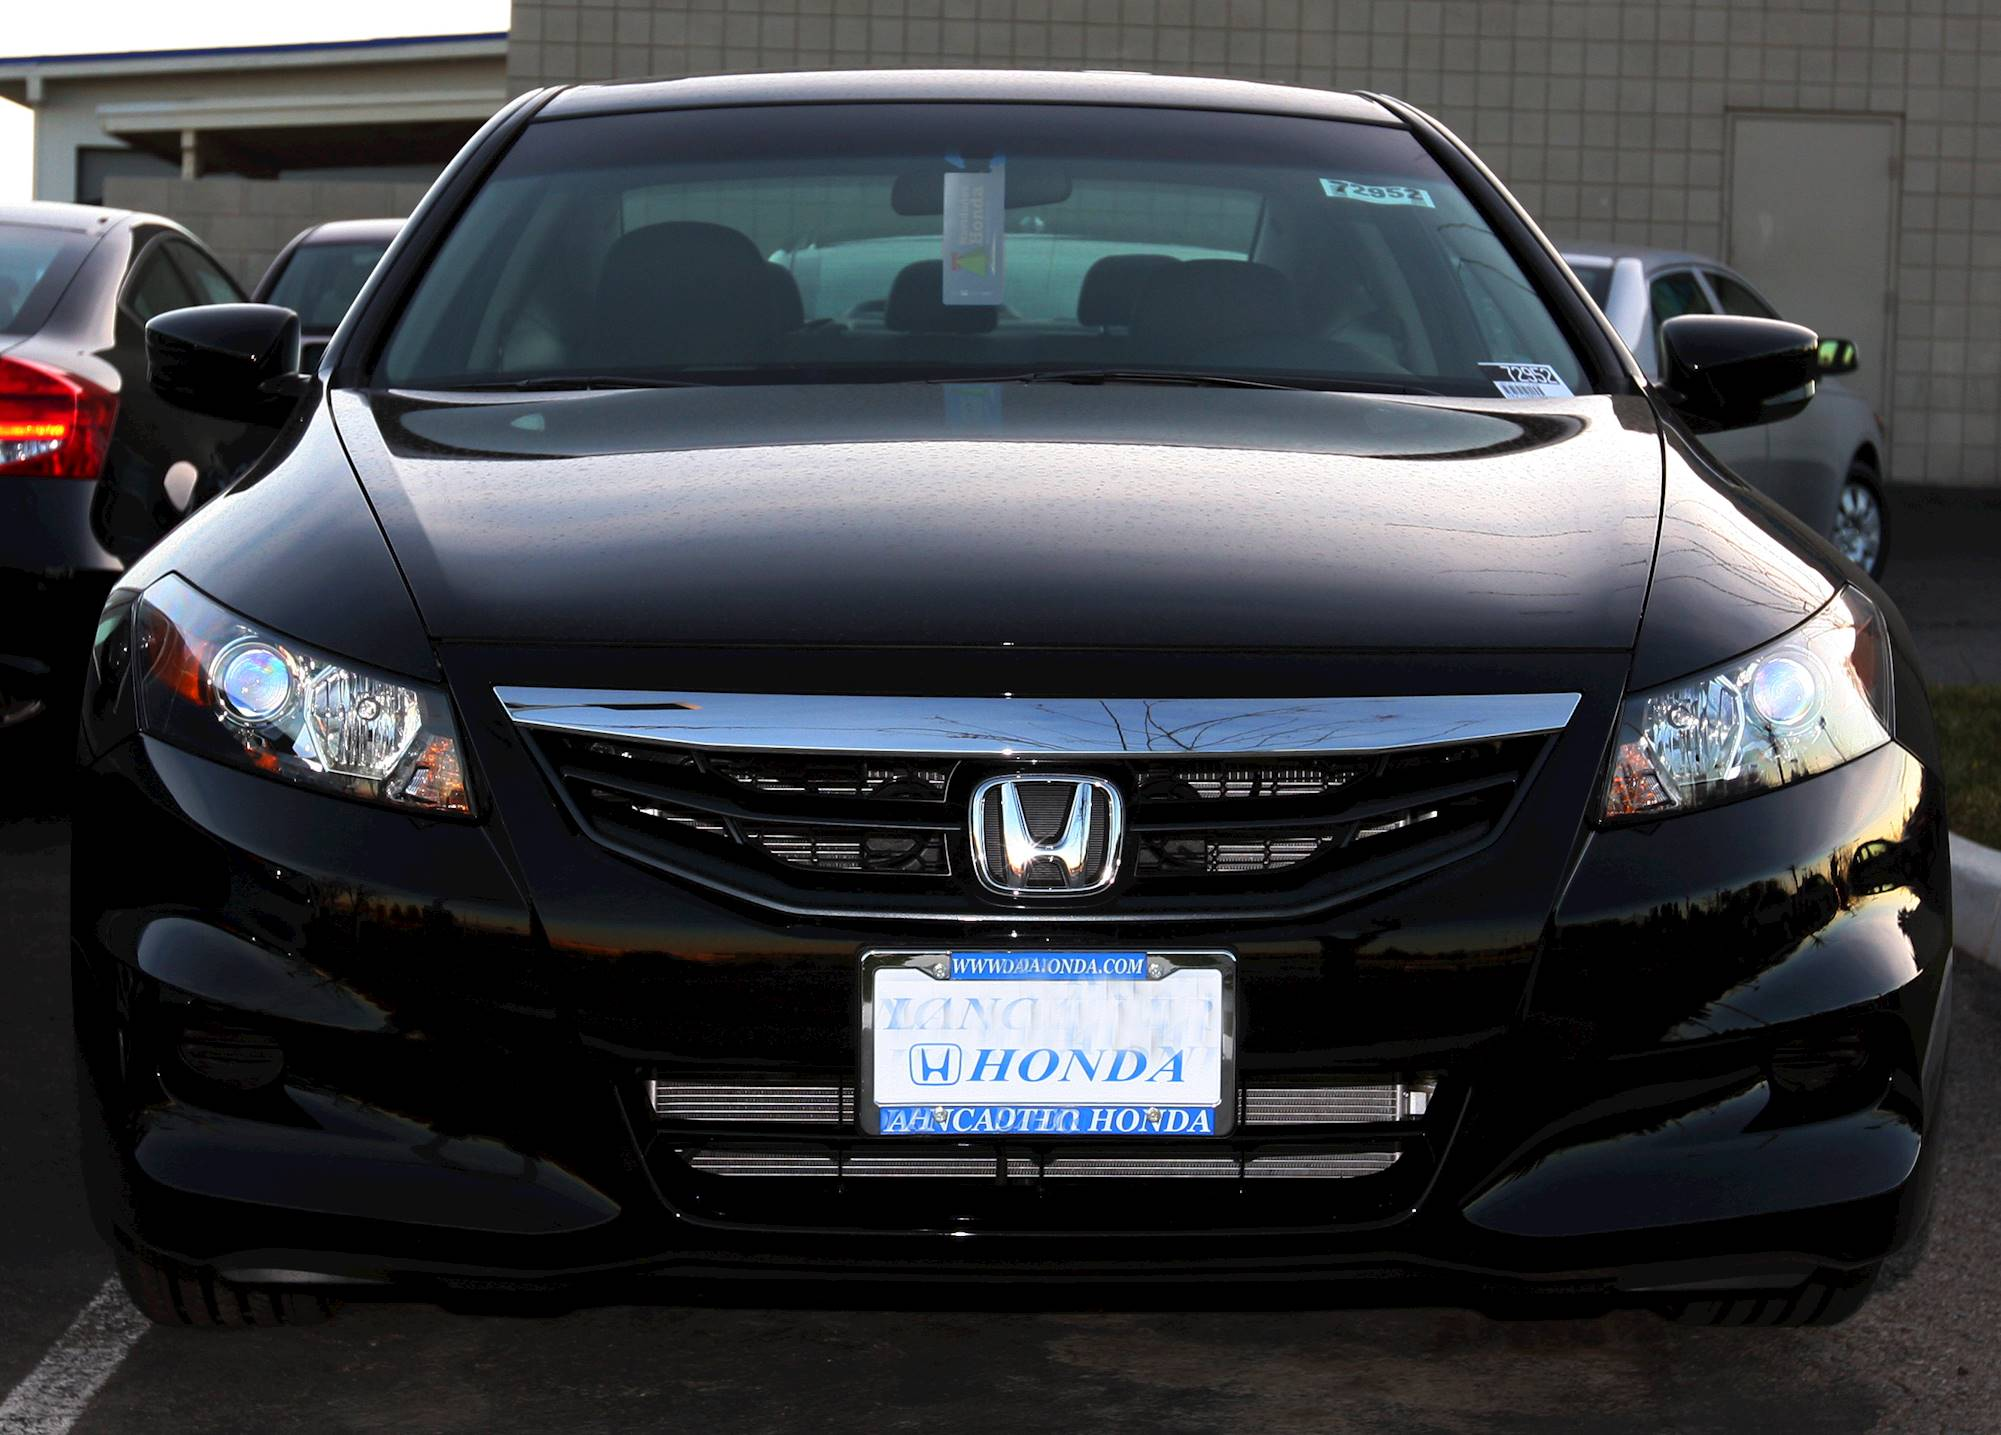 2011 Honda Accord 2 4 Ex 4dr Sedan W Manual 5 Spd Manual W Od